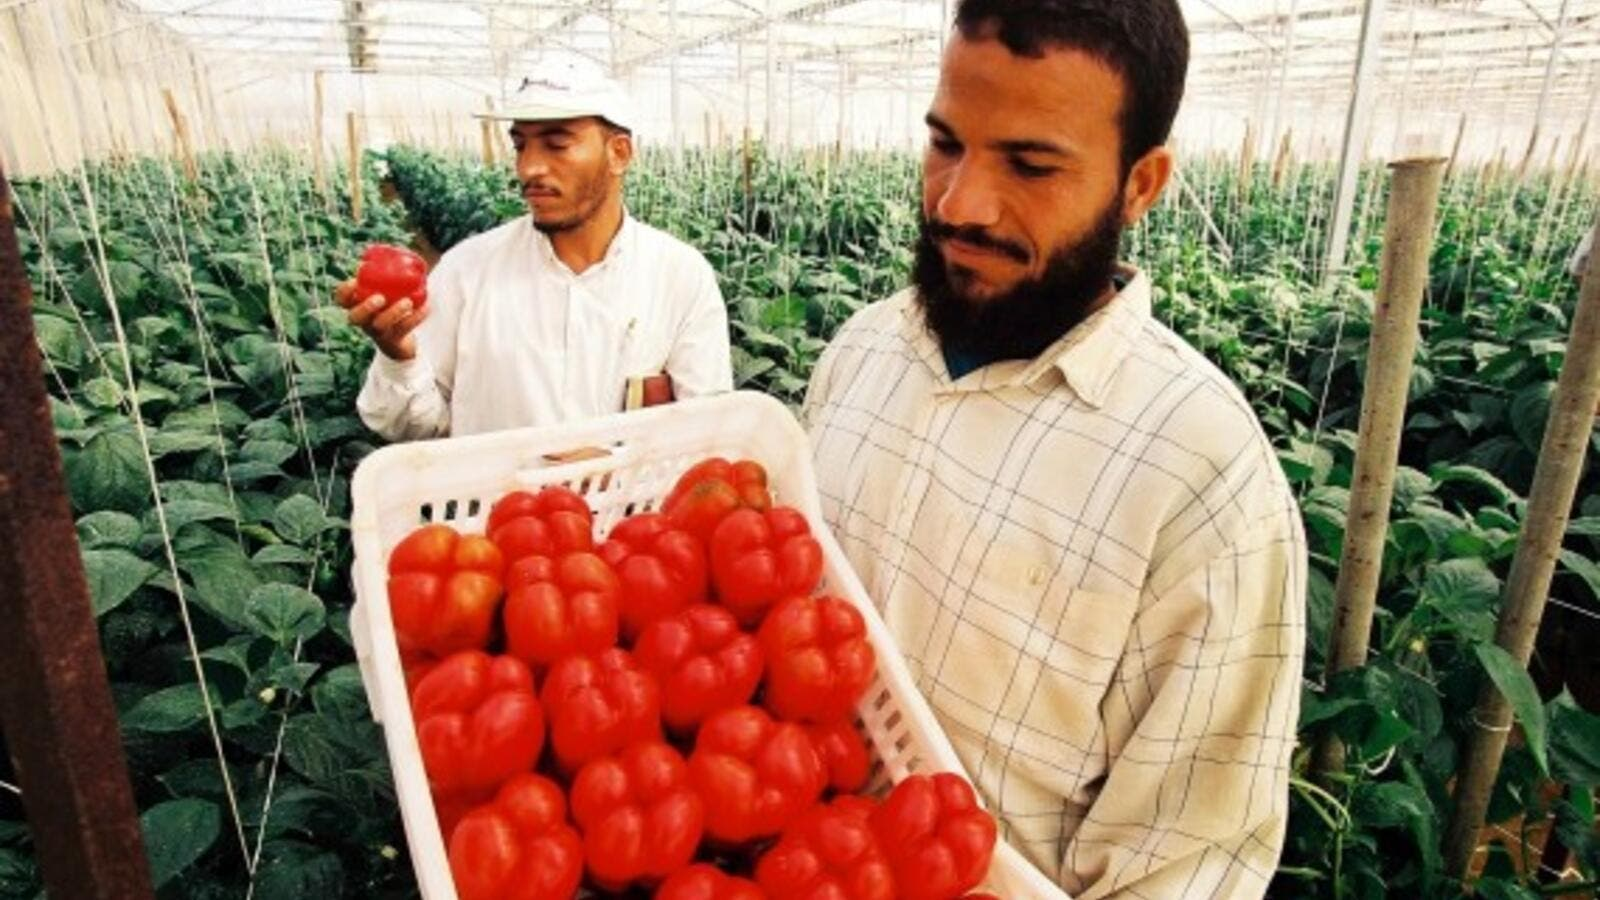 Egyptian agricultural products exported to Russia are estimated at $350 million annually. (USAID)